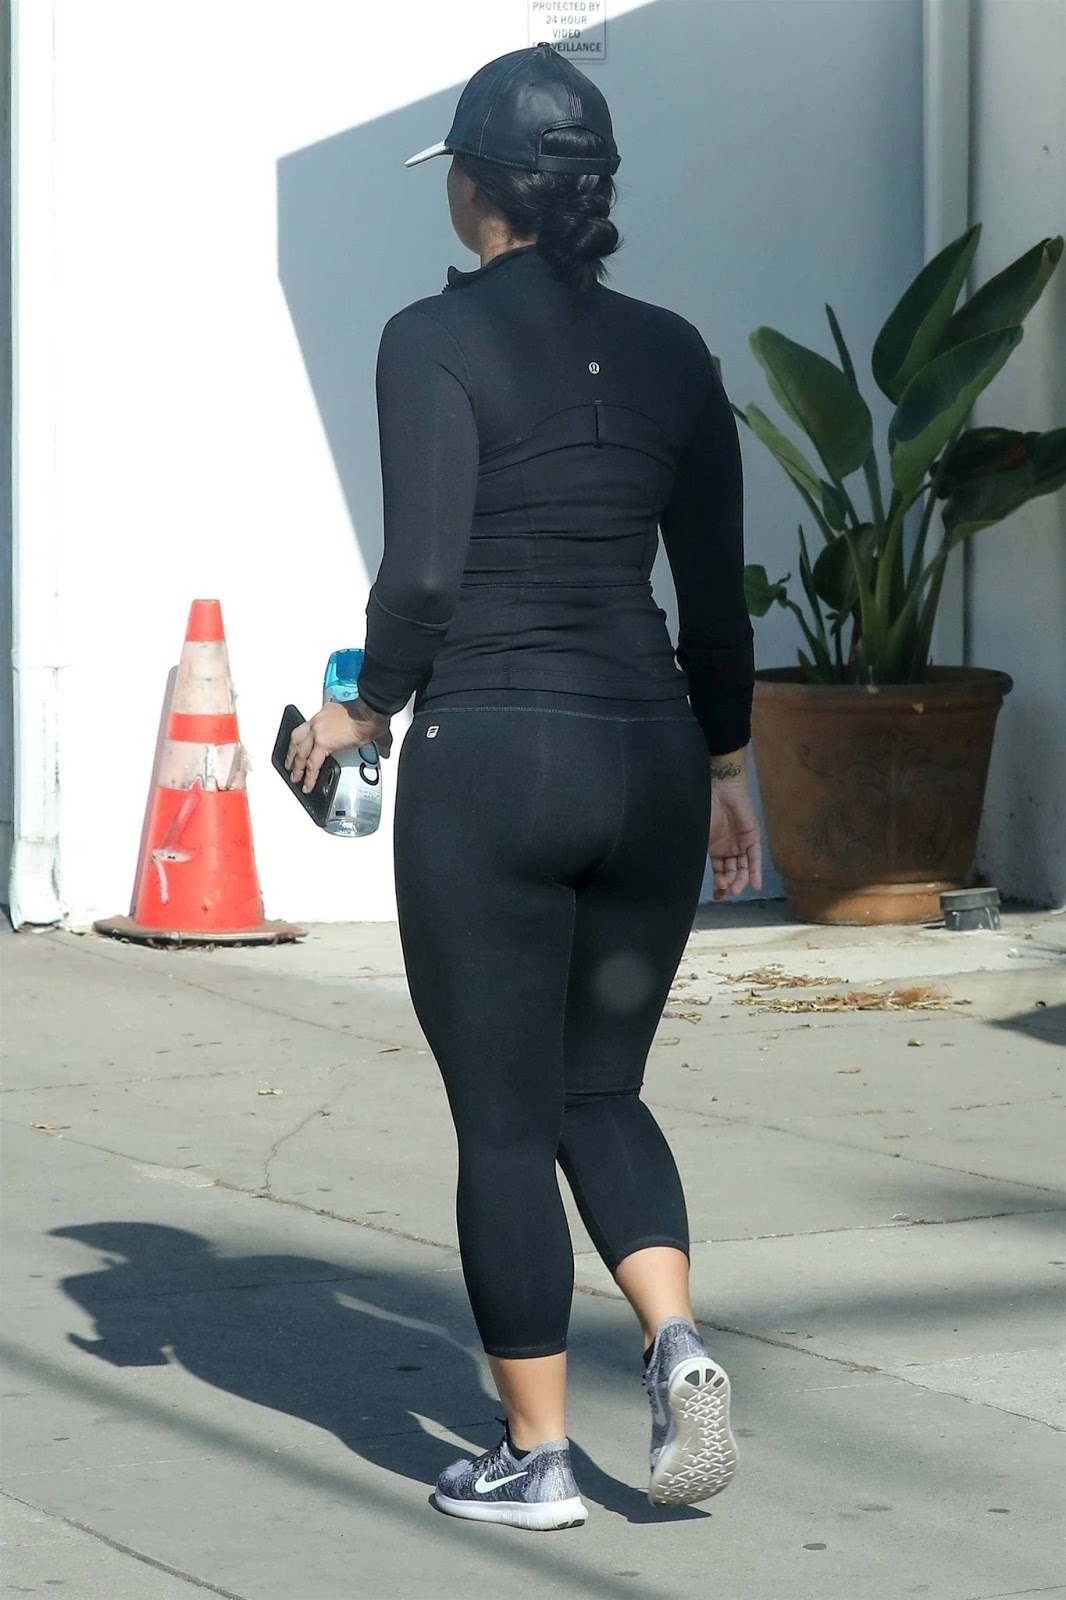 Demi Lovato Booty in Tights Leaving the Gym